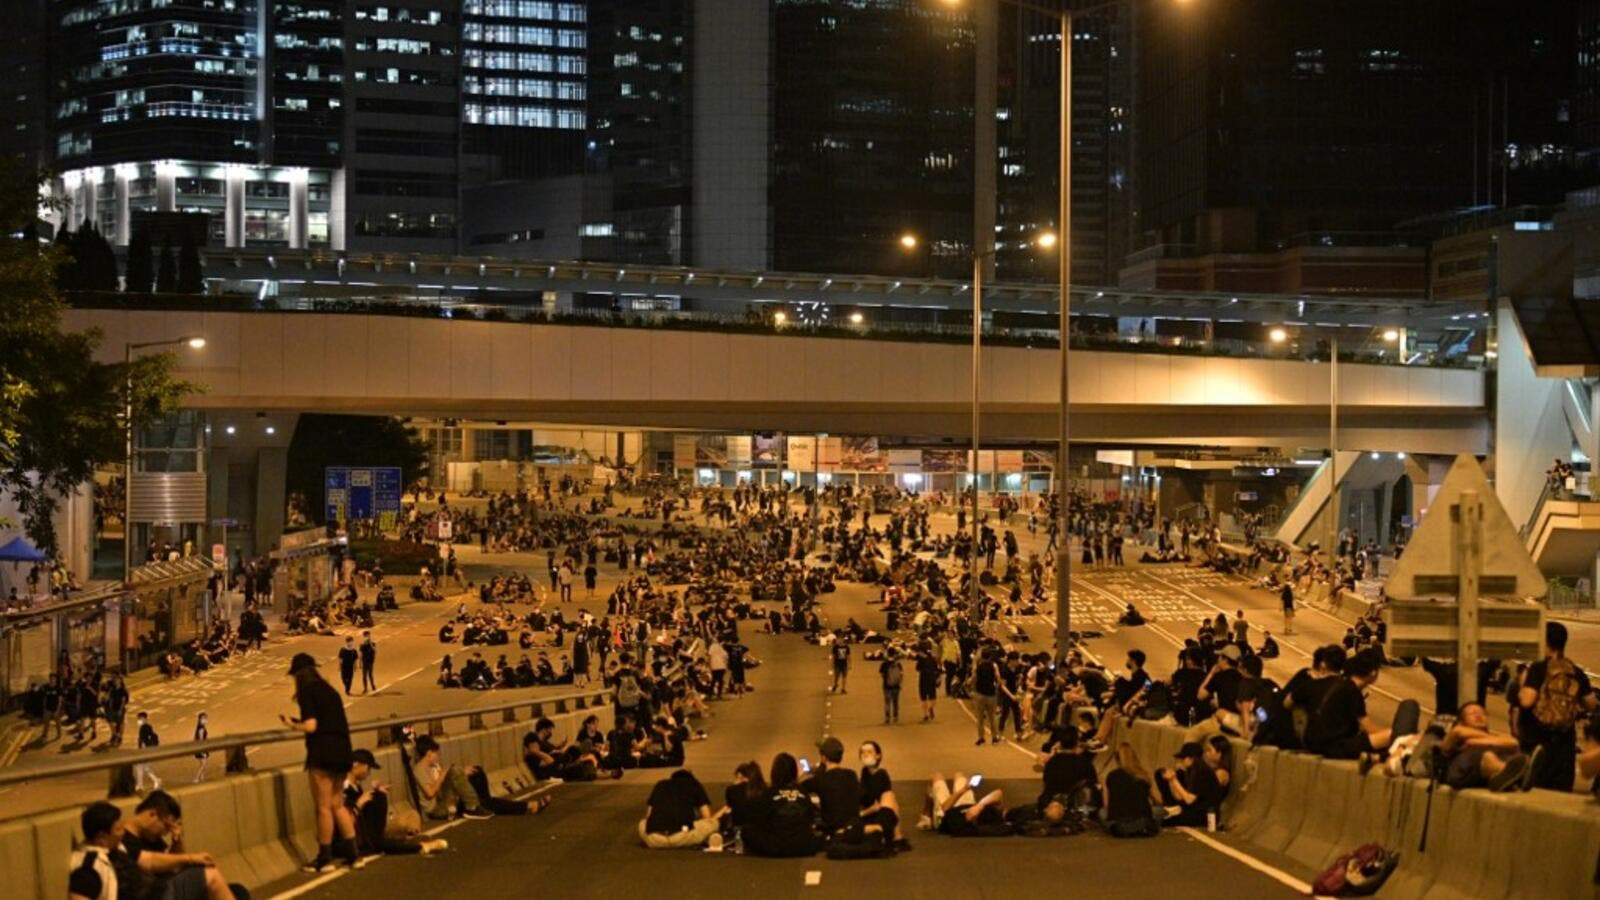 Protesters rest on a road as they rally against a controversial extradition bill in Hong Kong early on June 17, 2019. (AFP/ File Photo)